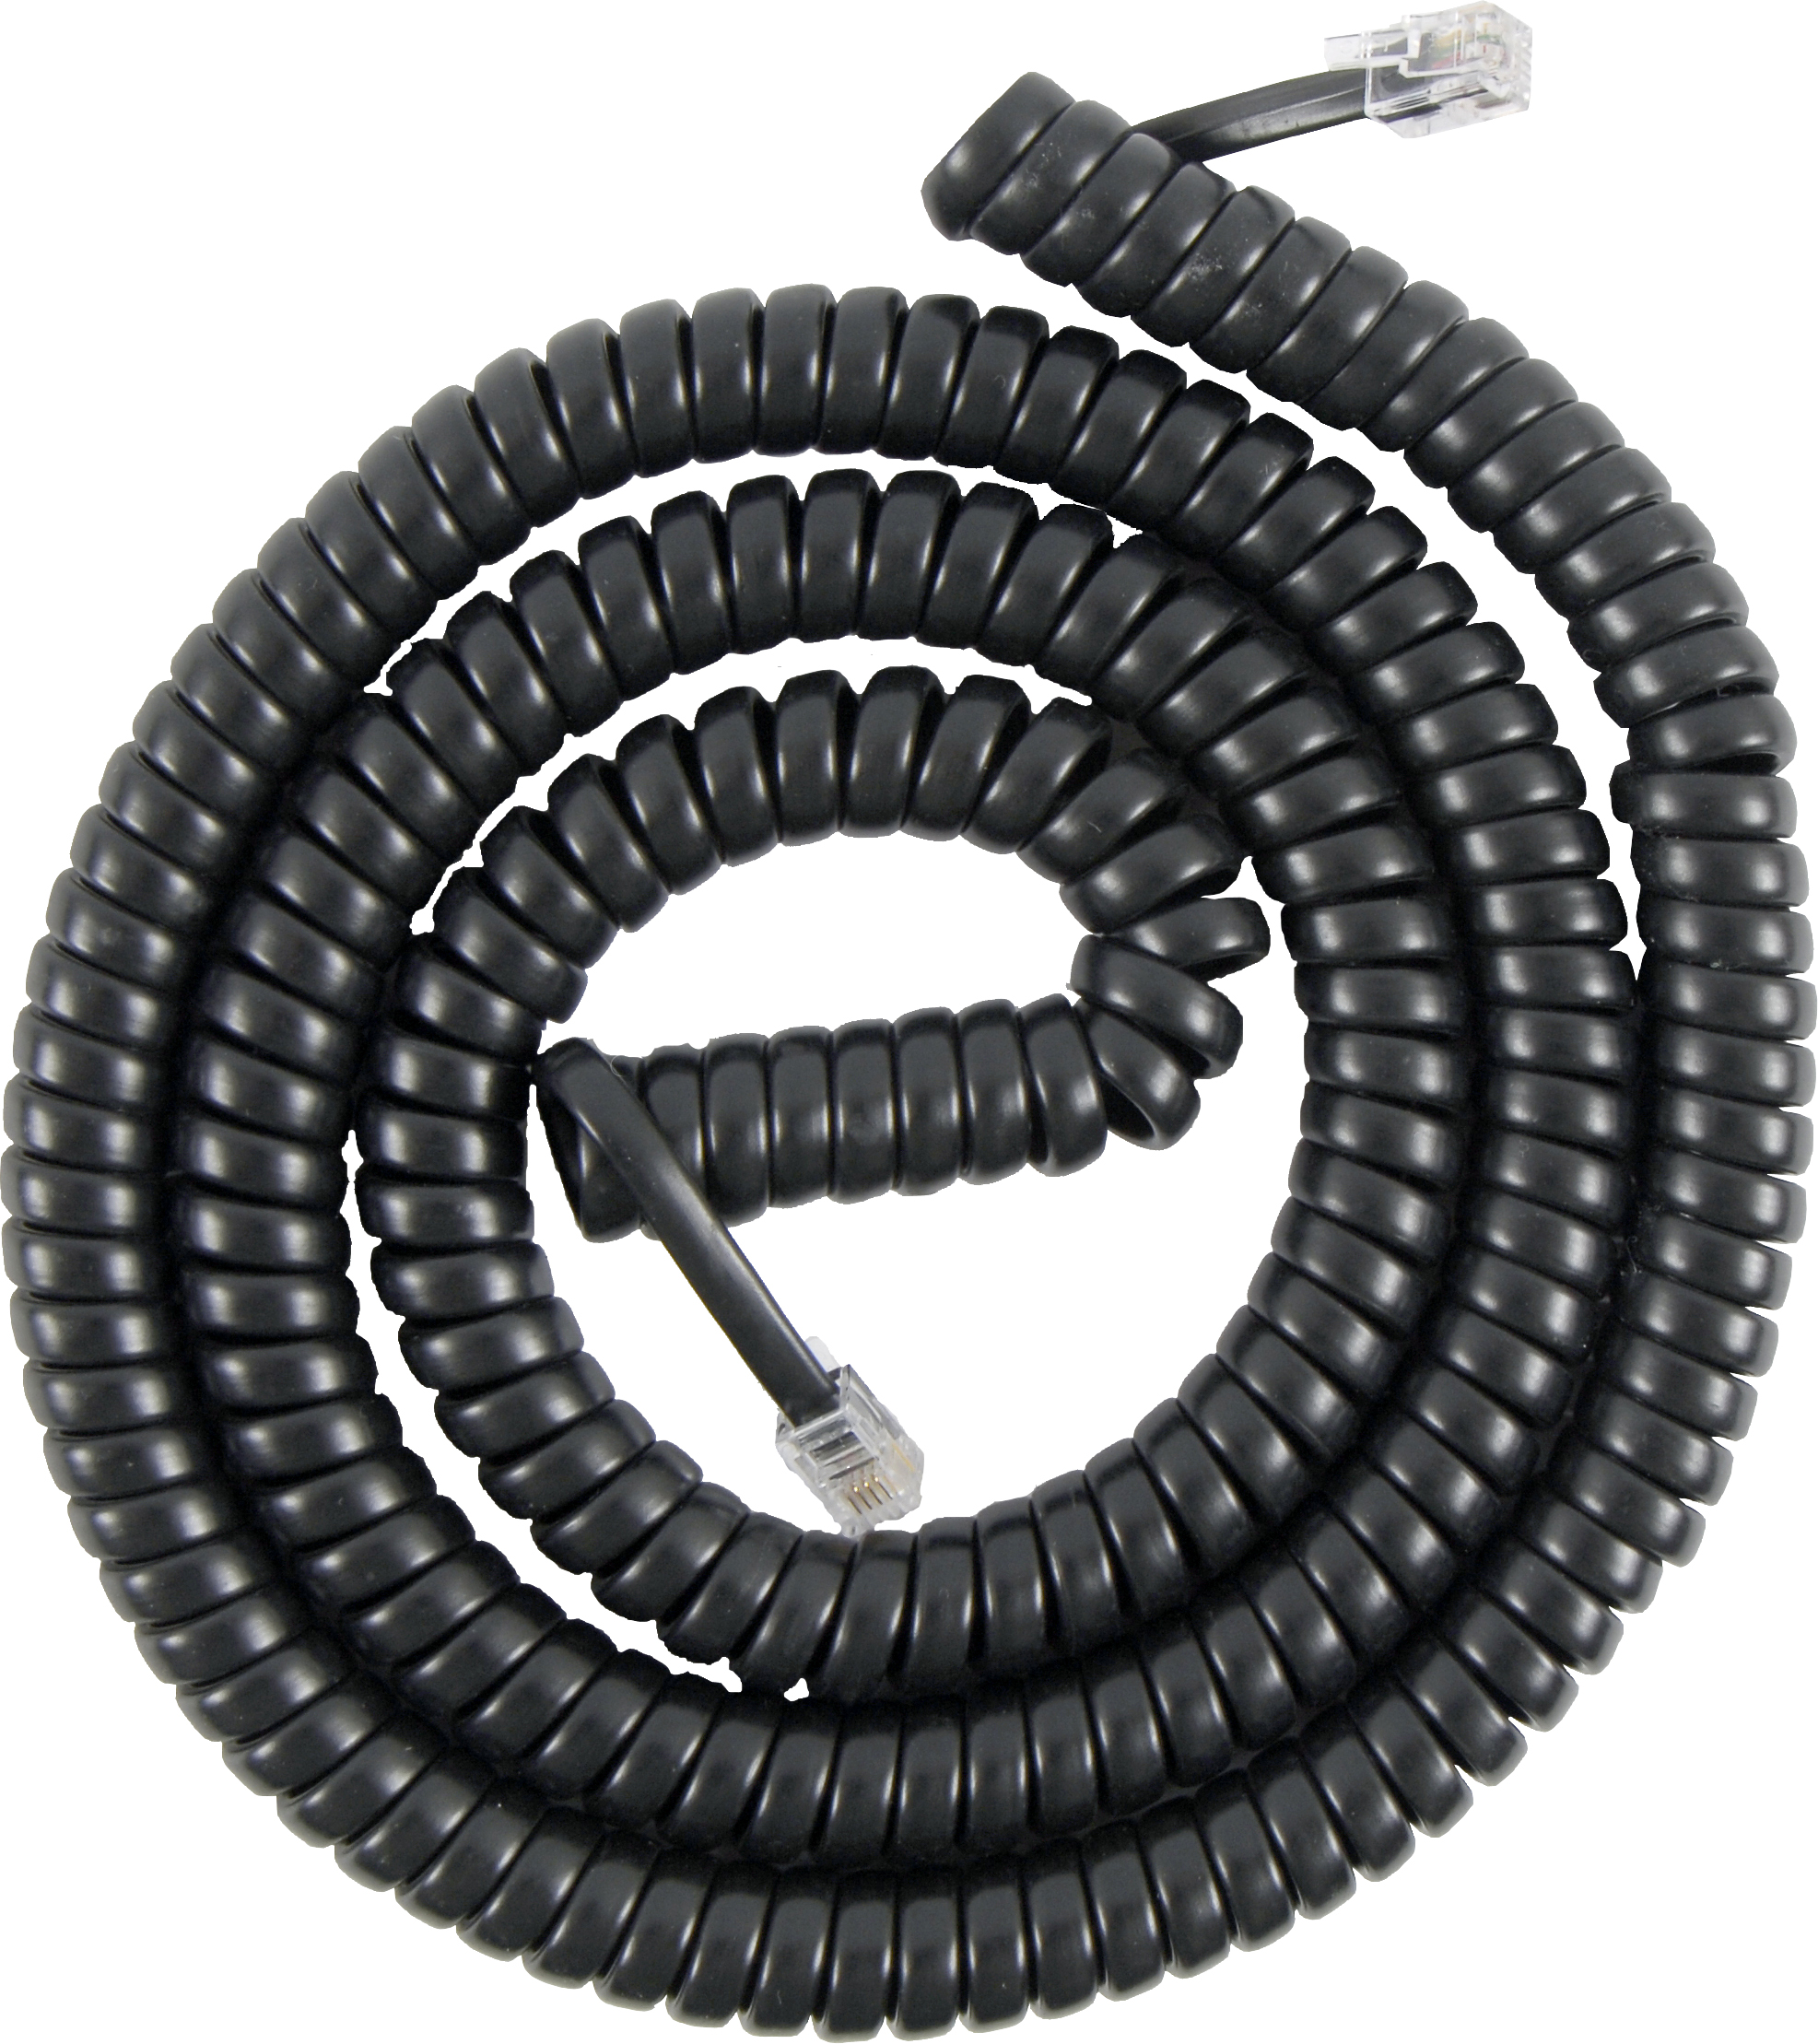 50 NEW BLACK 7/' TELEPHONE HANDSET CORD FREE SHIP USA